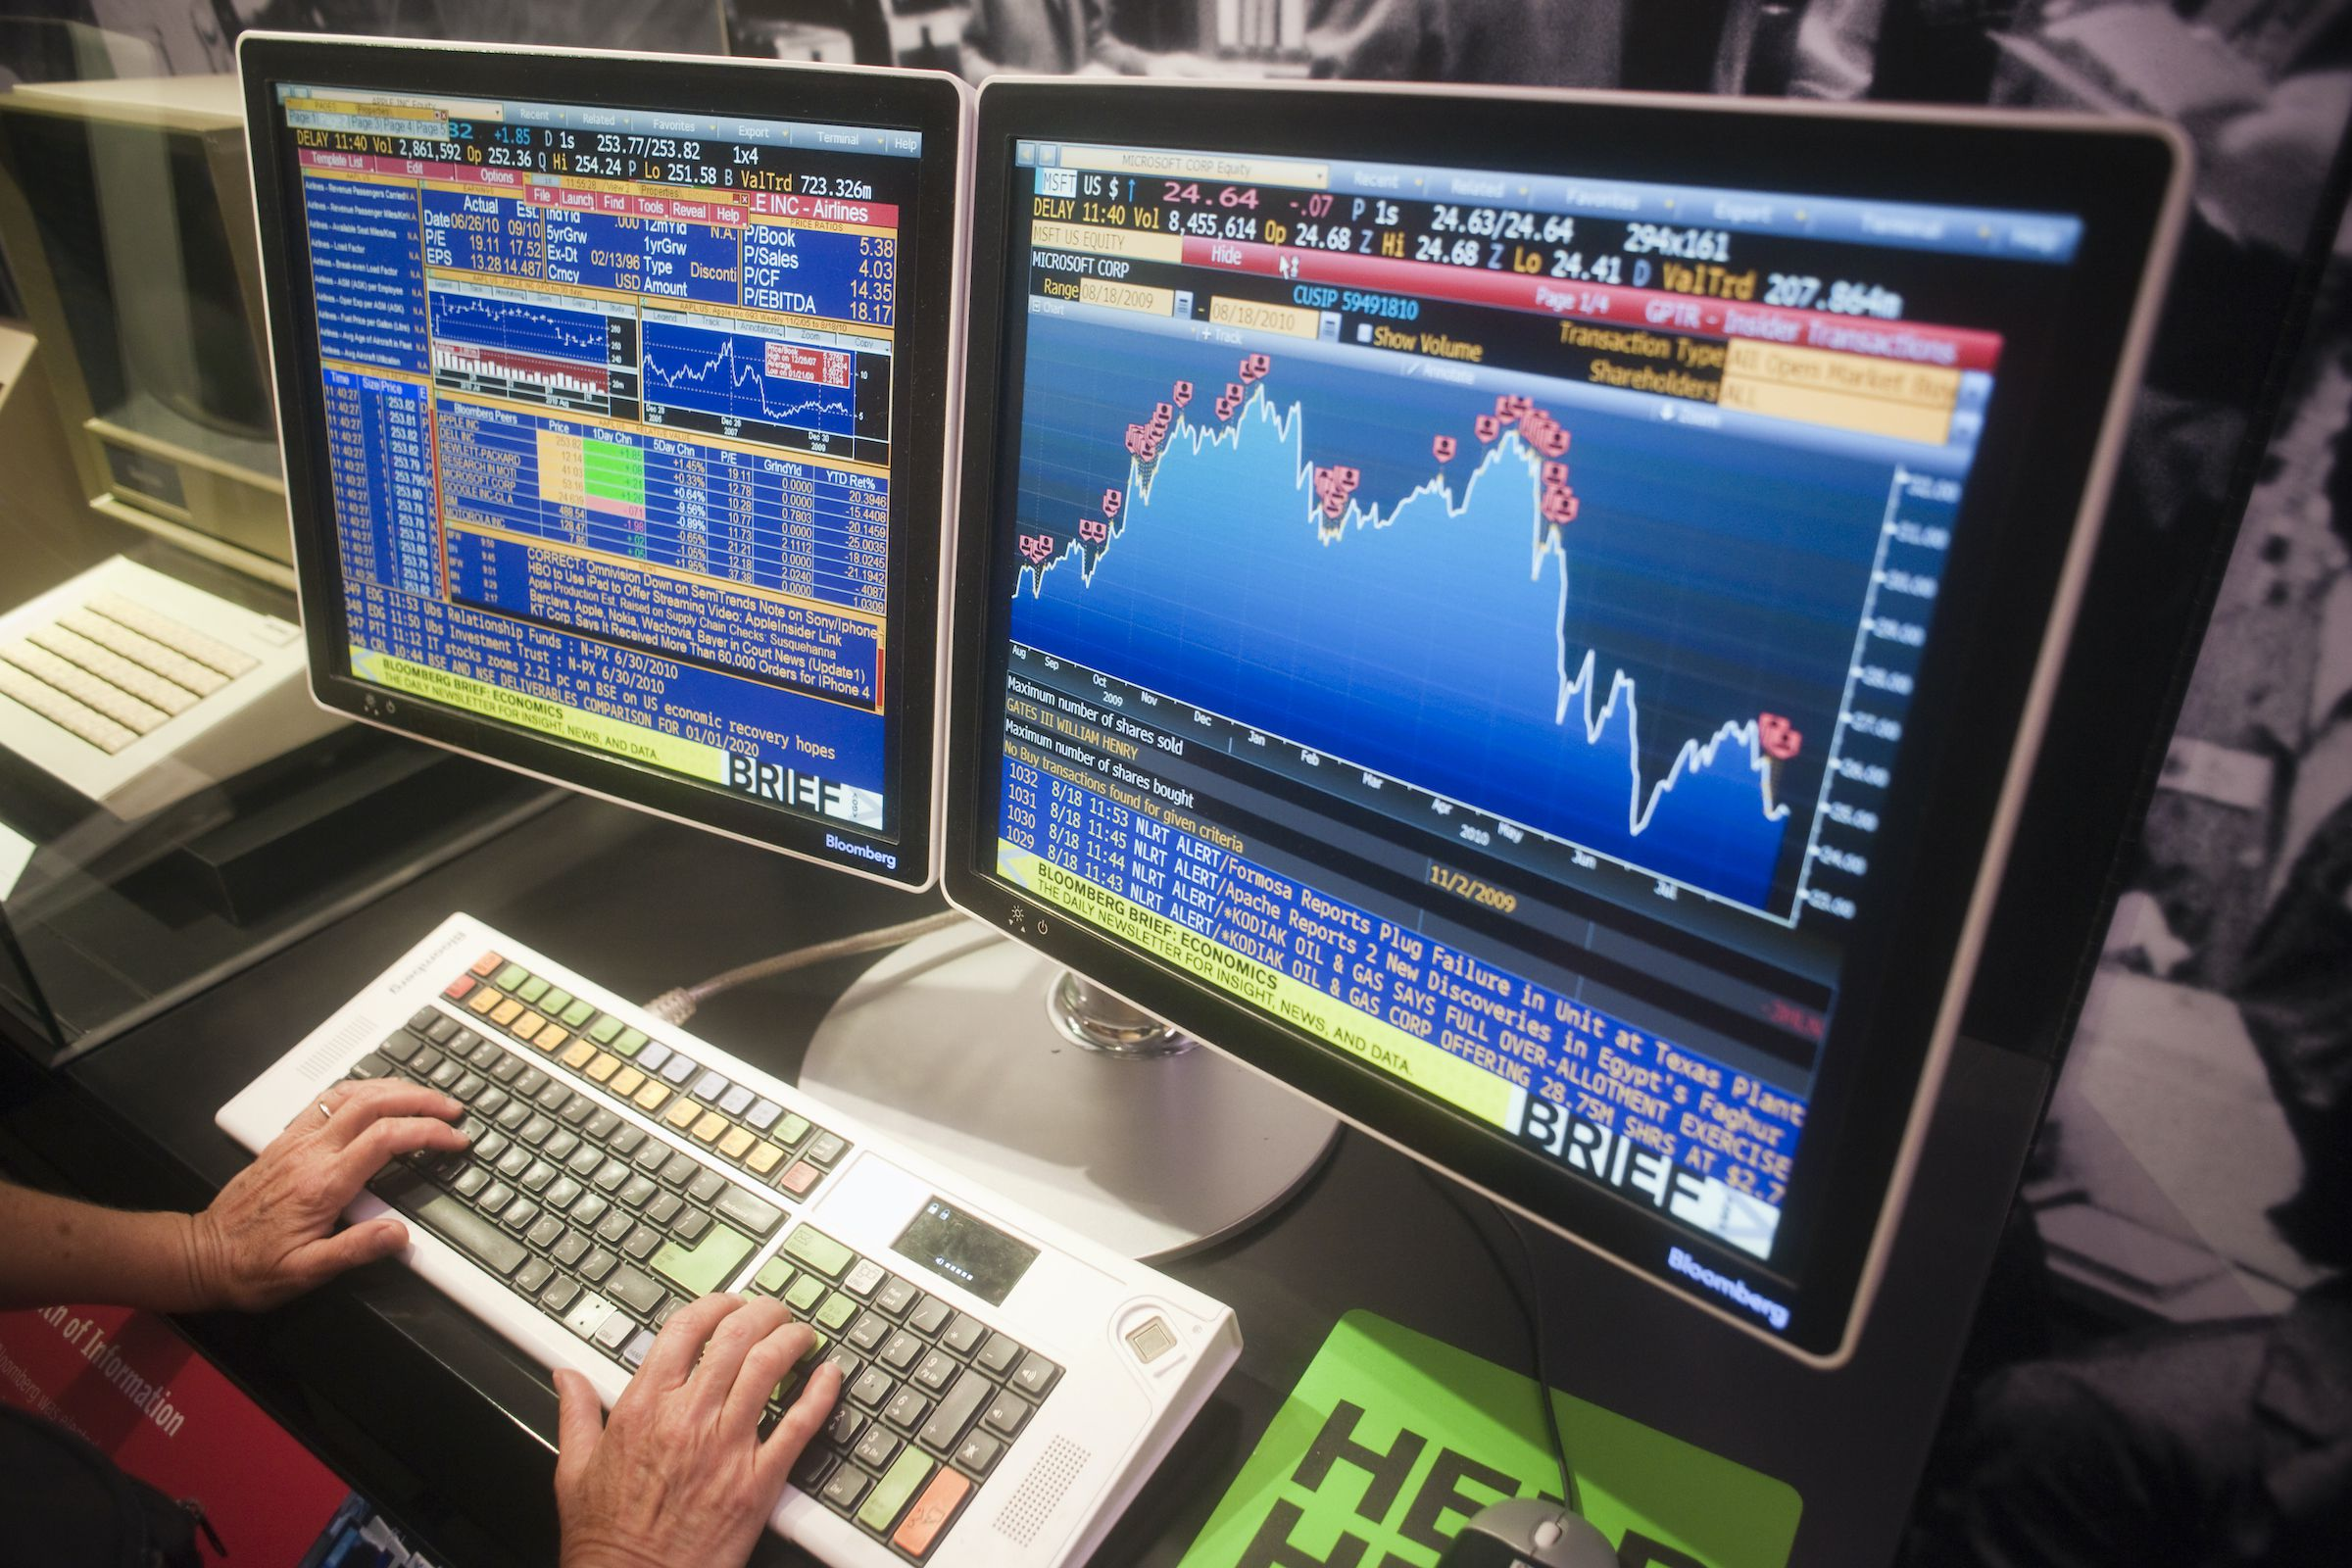 Bloomberg Terminals 2